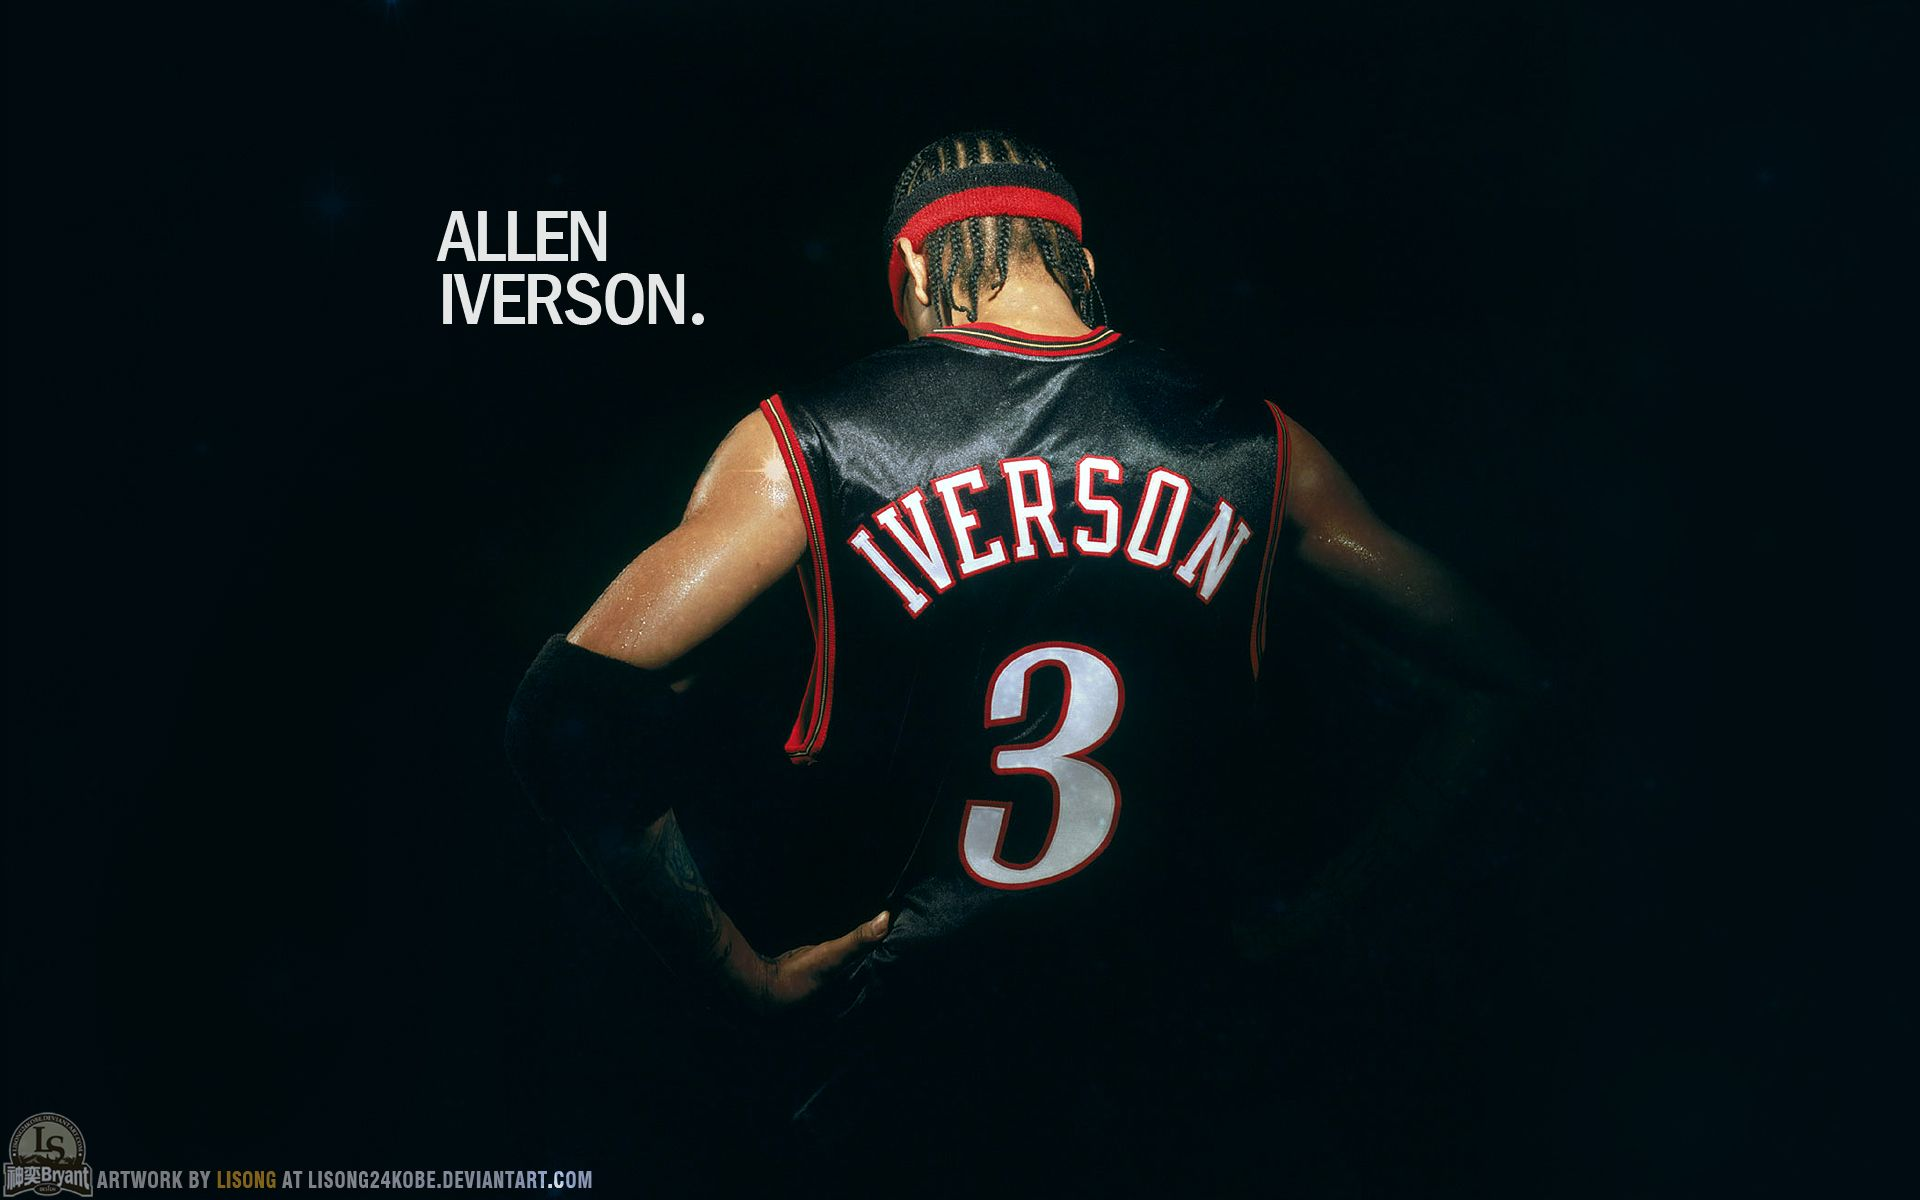 Number 3 Is The Answer With Images Allen Iverson Allen Iverson Wallpapers Sports Pictures